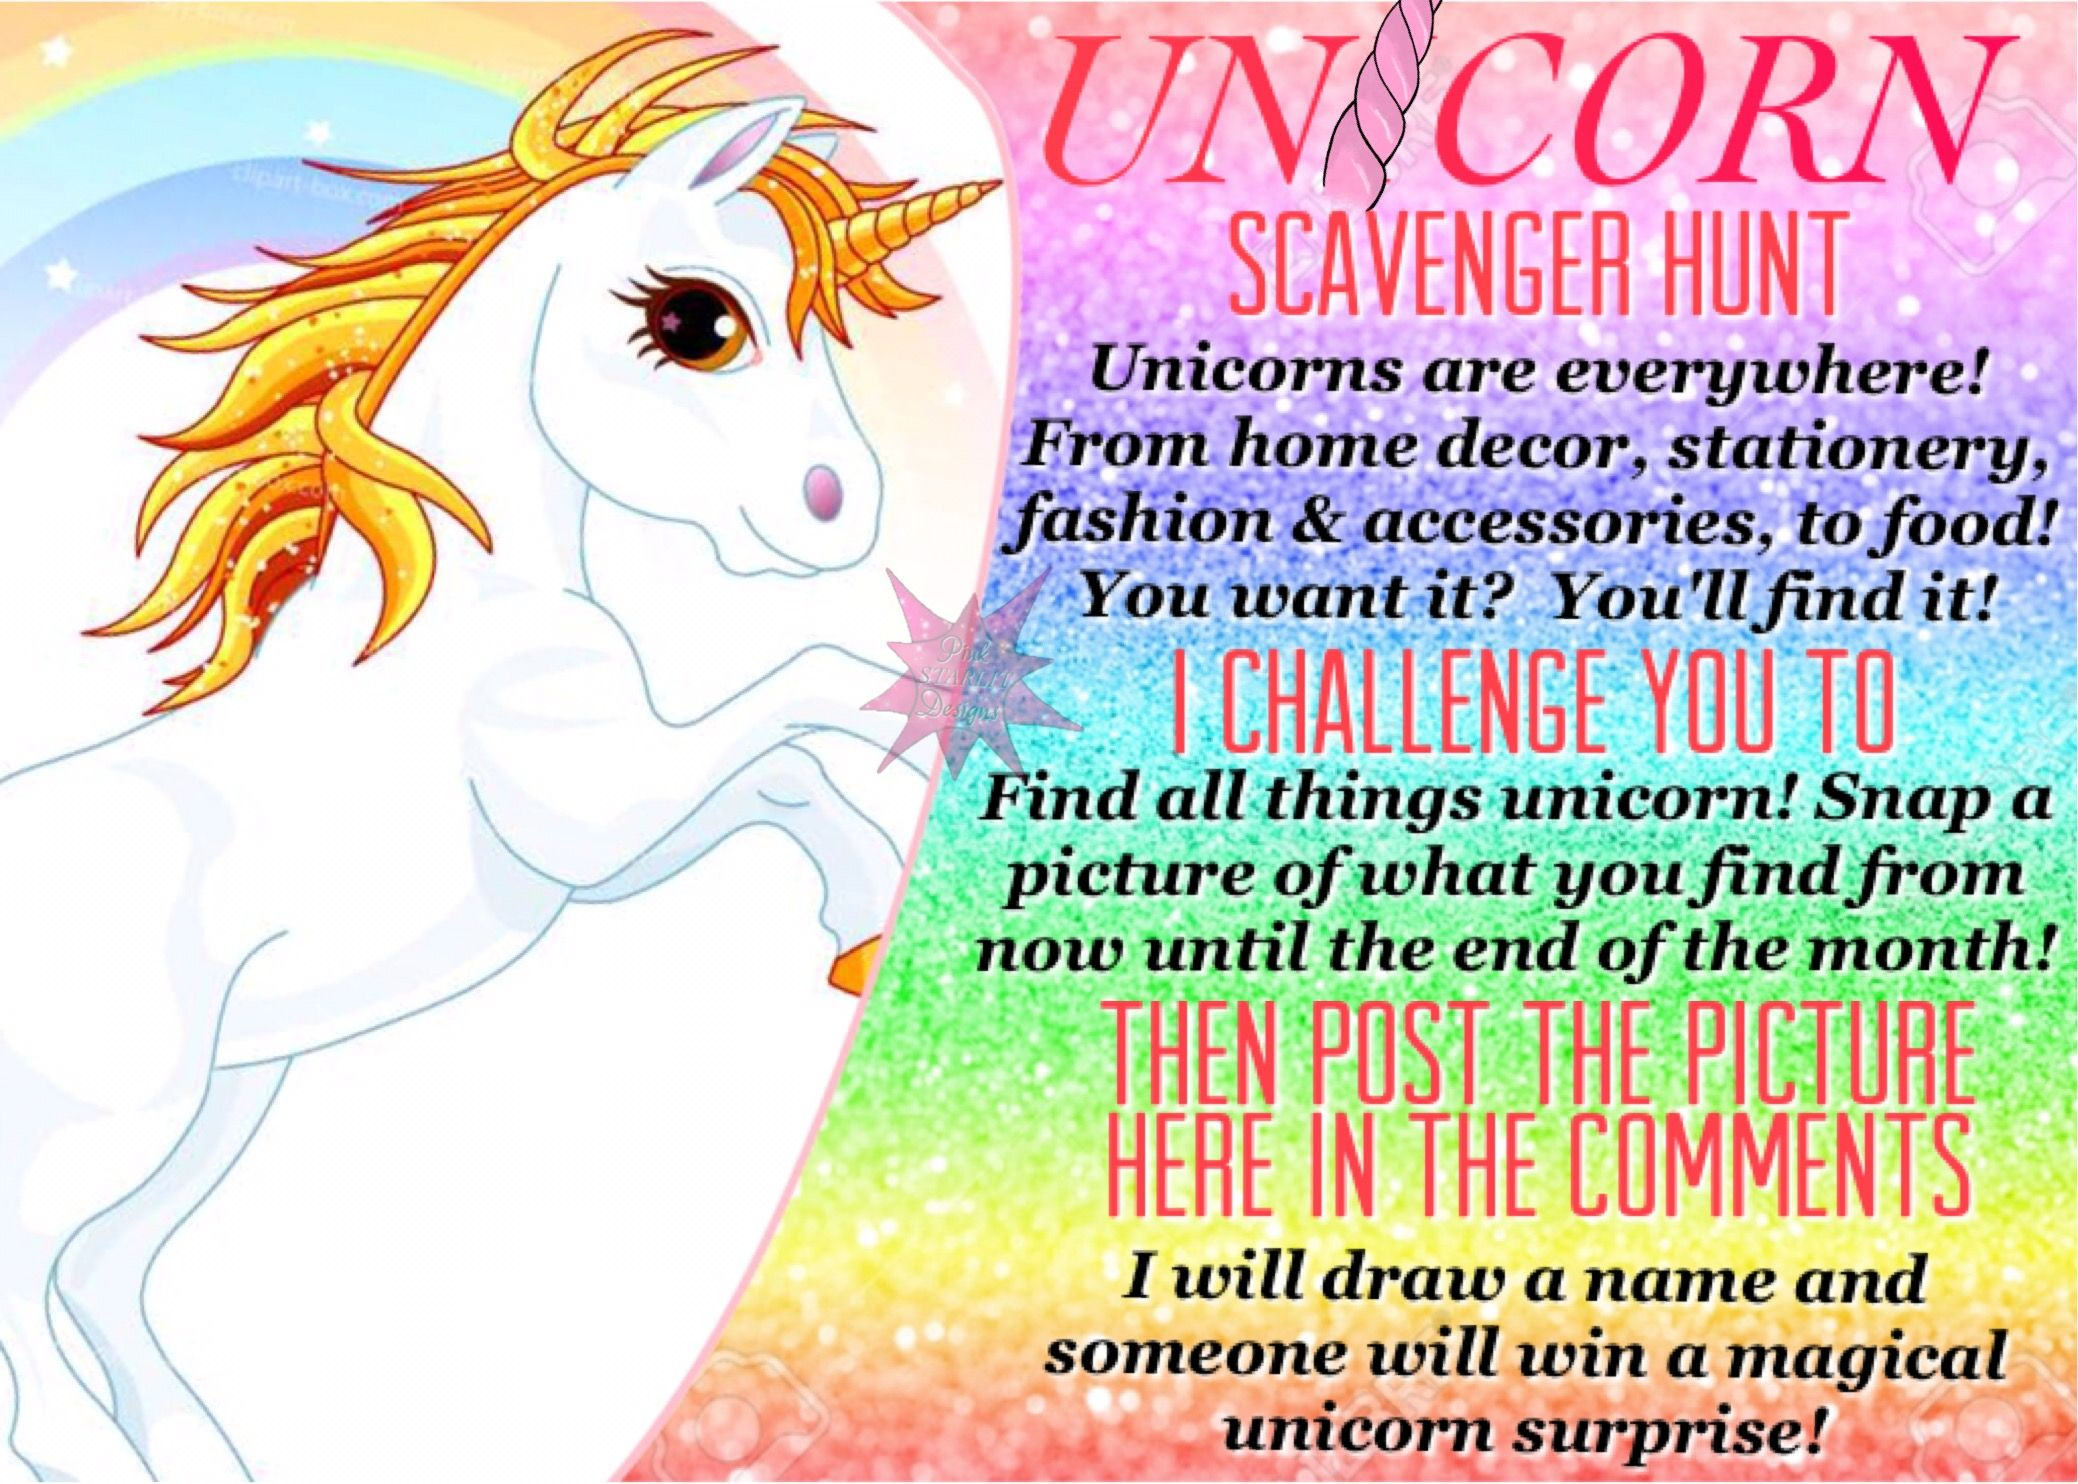 Unicorn scavenger hunt for Facebook VIP group  Fun month